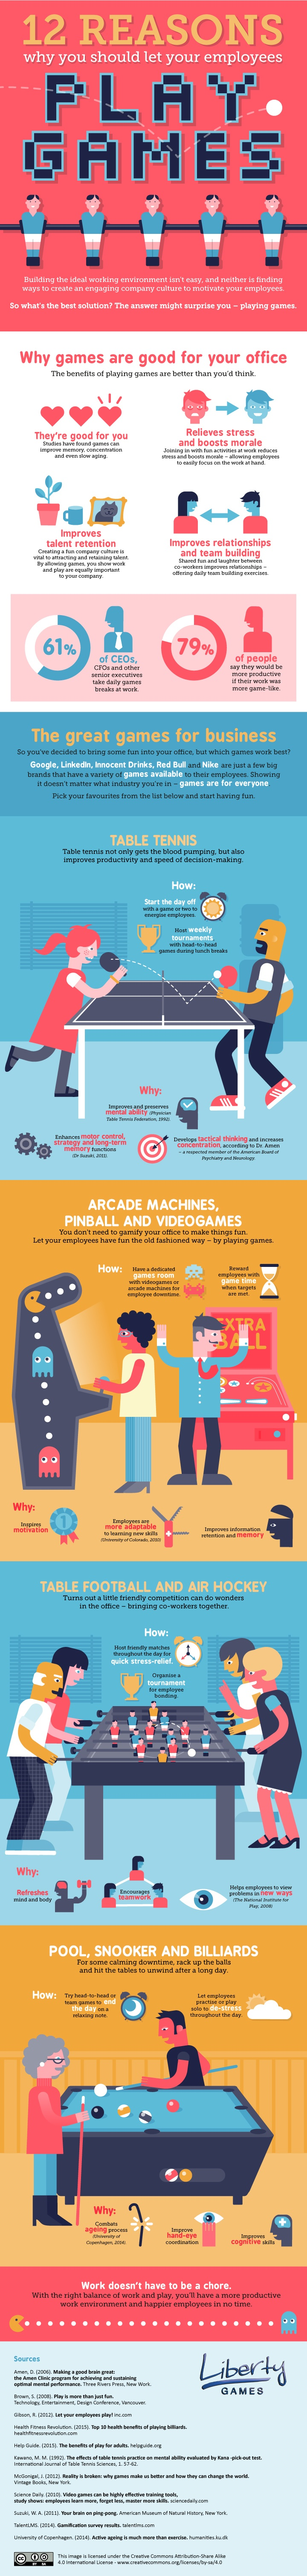 Why You Should Let Your Employees Play Games Infographic